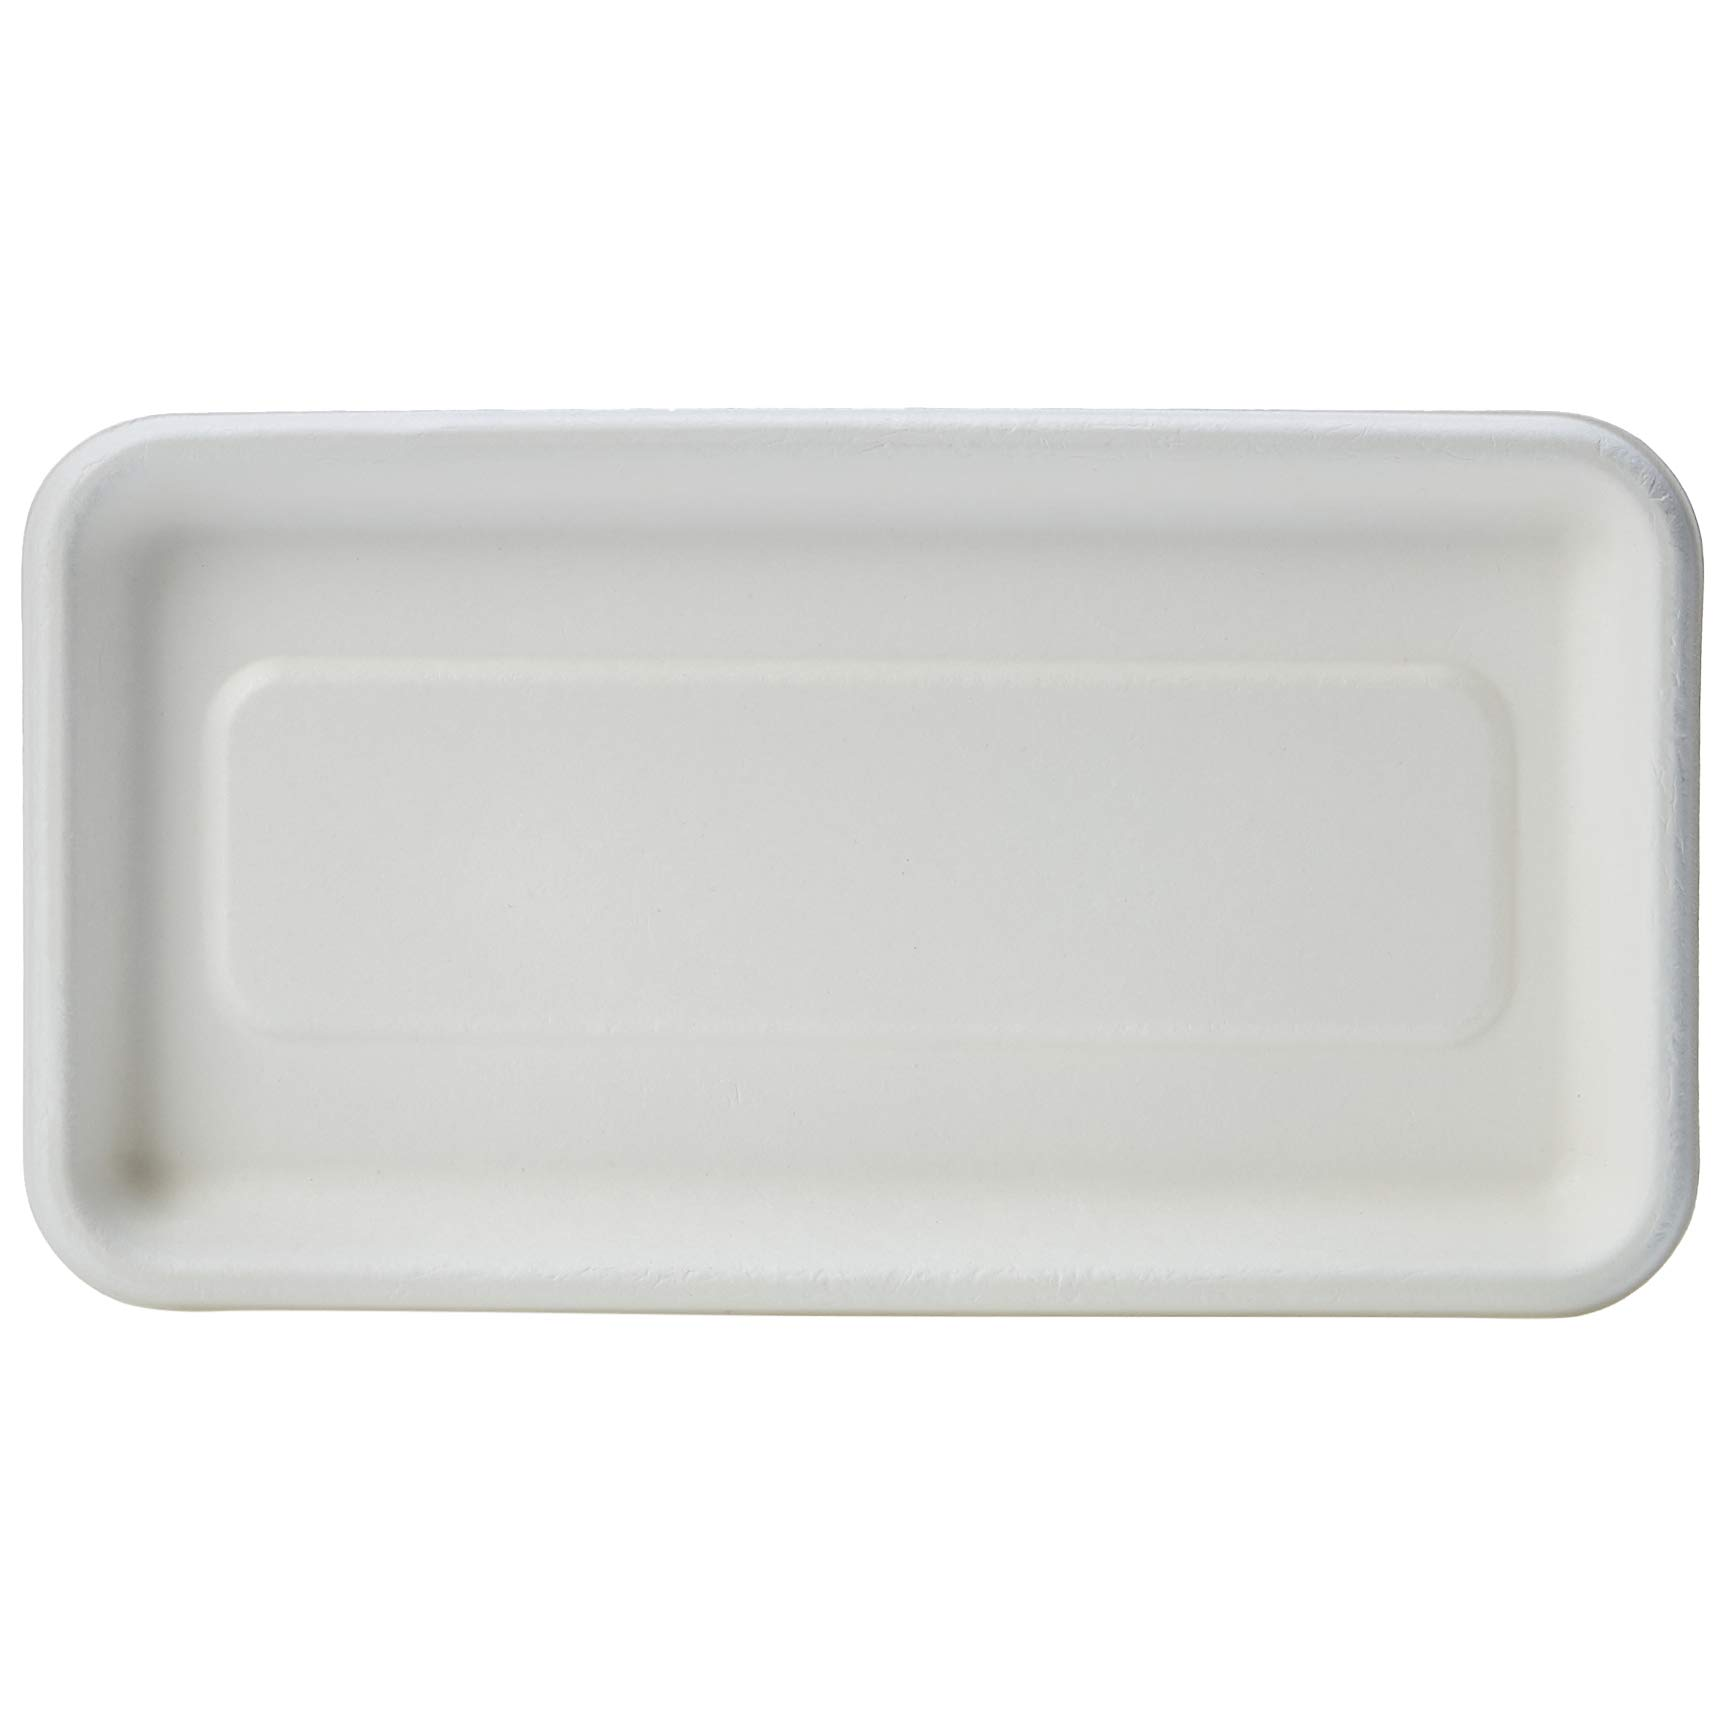 AmazonBasics Compostable Mini Tray, White, 8.3 x 4.5 x 0.6 Inches, 500 Trays